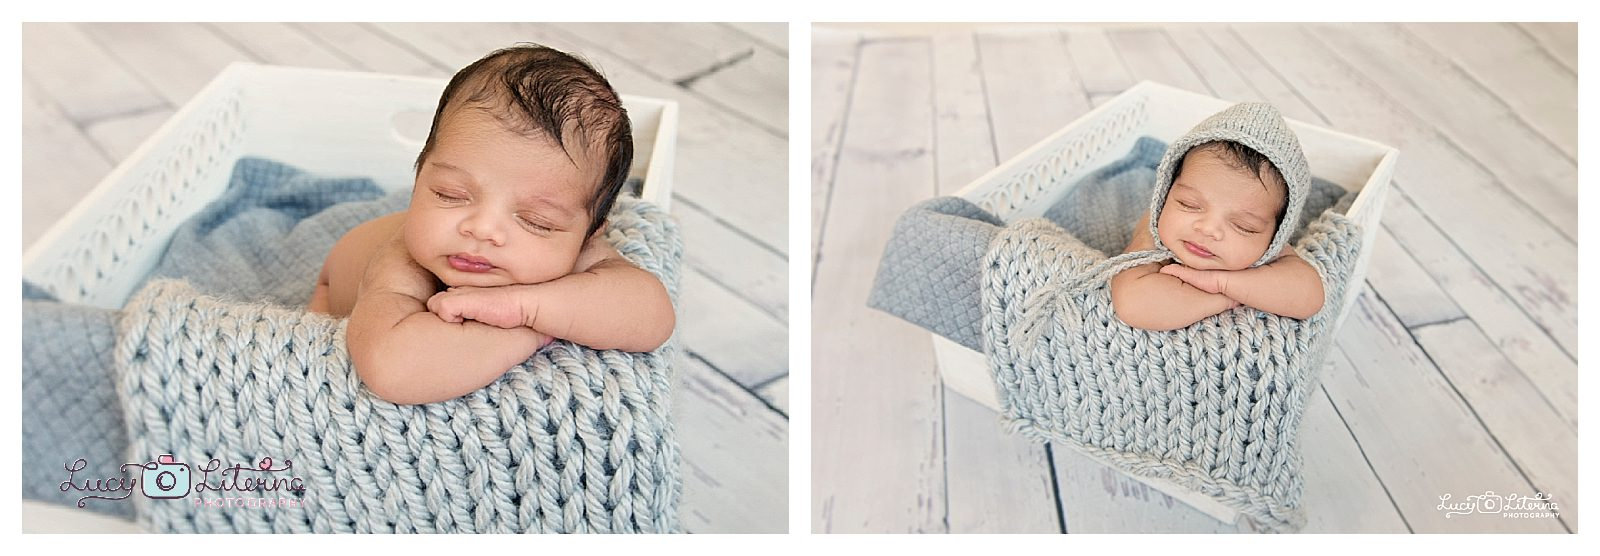 Newborn photographer toronto studio